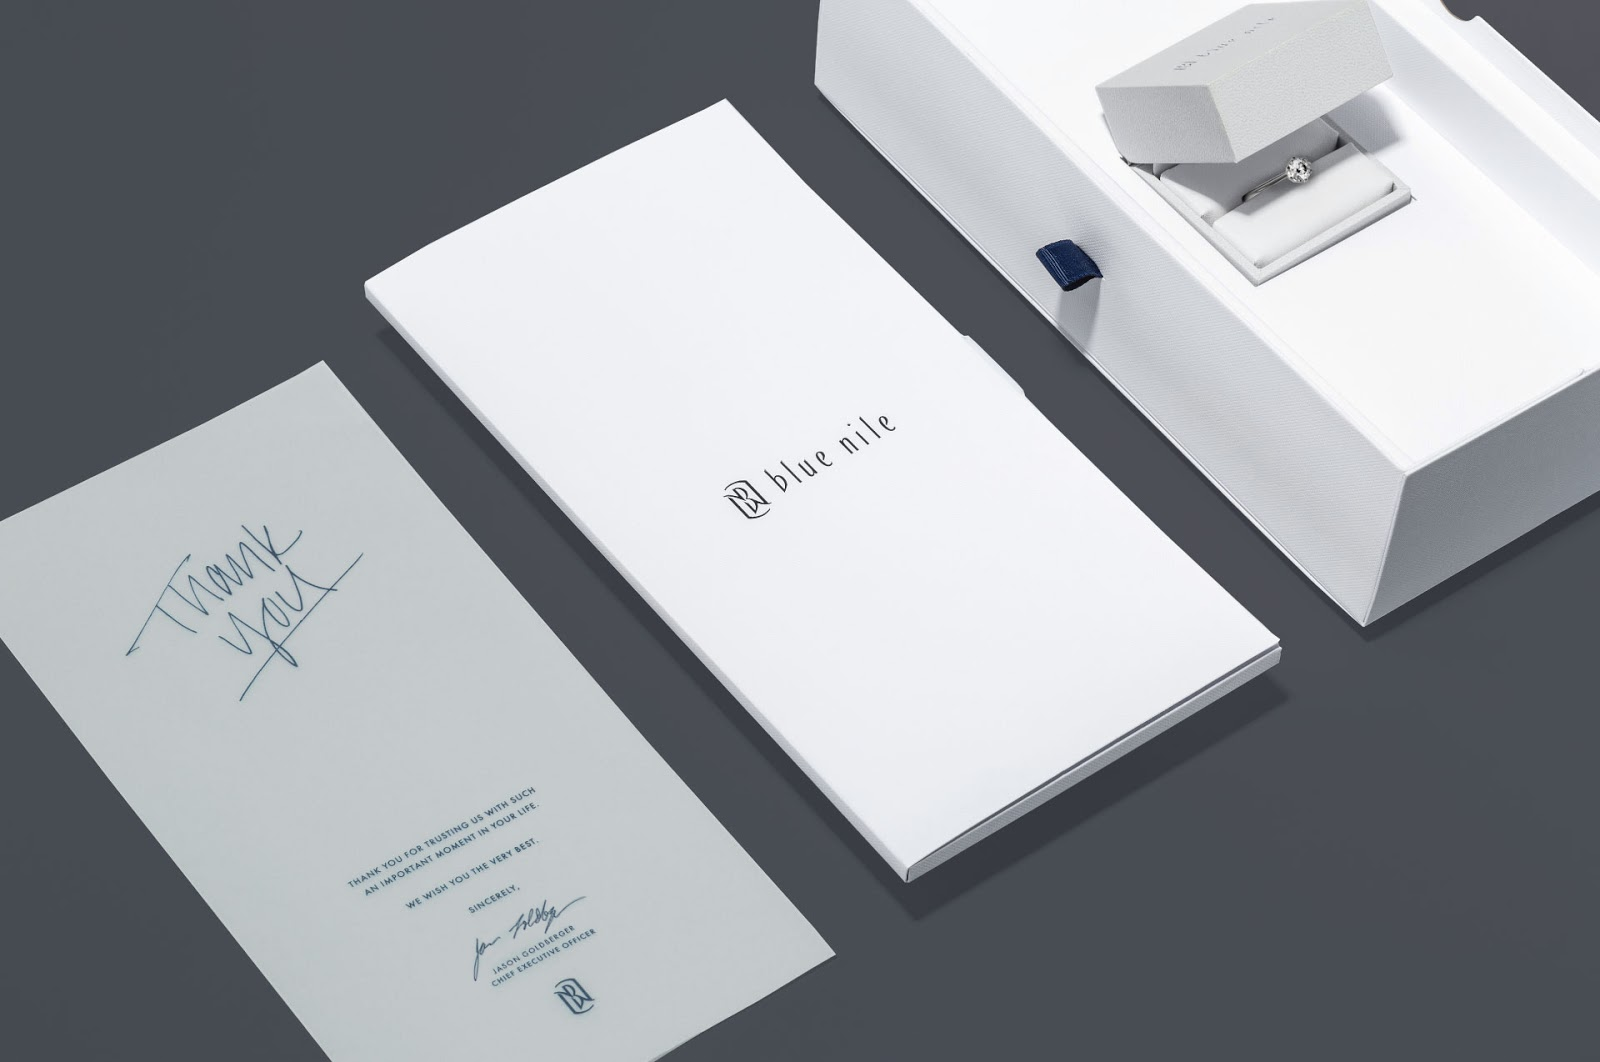 Blue Nile: A Multifaceted E-commerce Experience on Packaging of ...